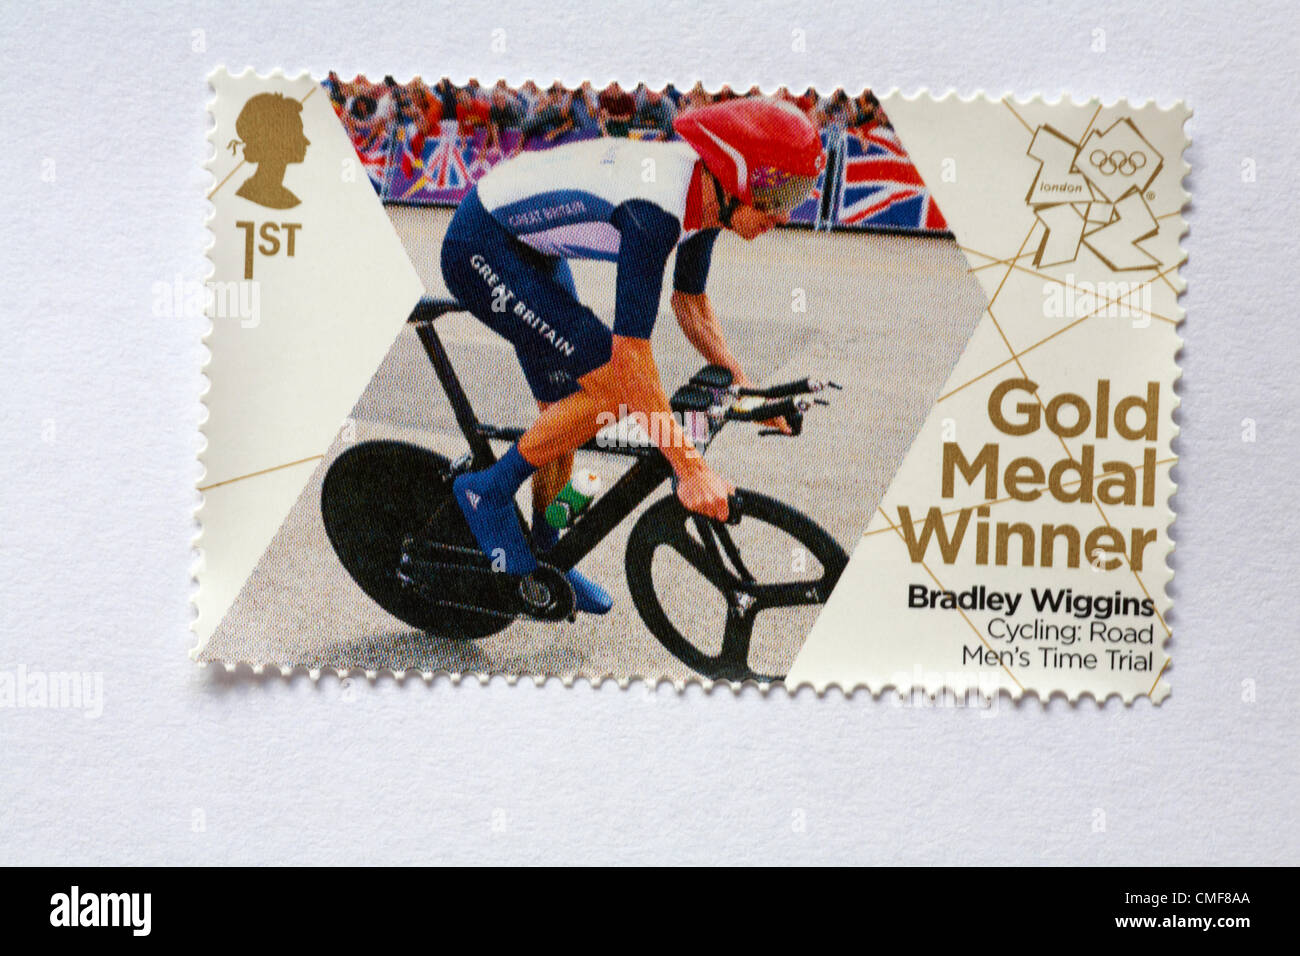 Olympic Memorabilia Chris Hoy Cycling Olympic Winner Poster Large Assortment Sports Memorabilia